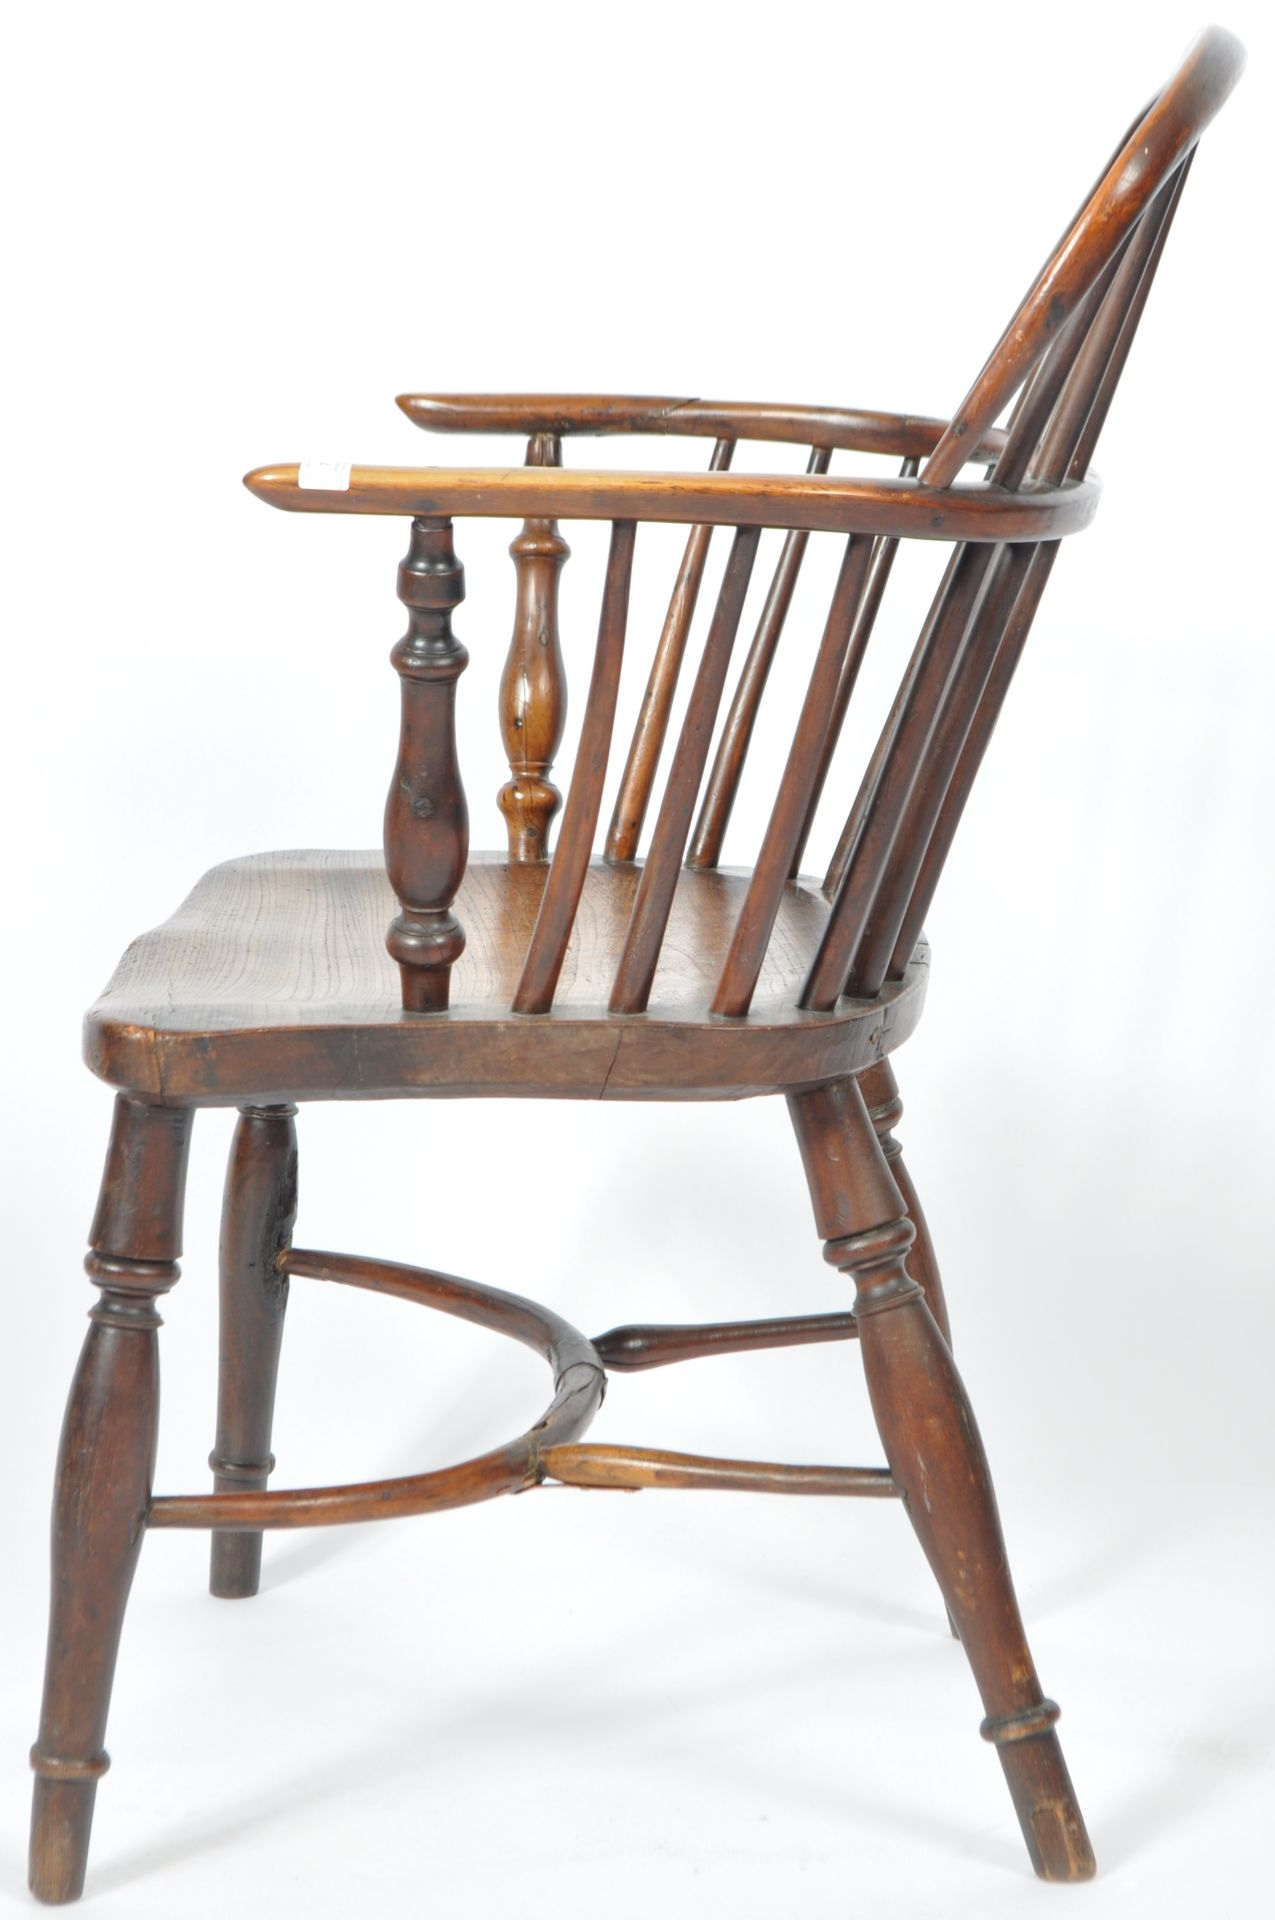 ANTIQUE GEORGIAN YEW AND ELM CRINOLINE WINDSOR ARMCHAIR - Image 8 of 9